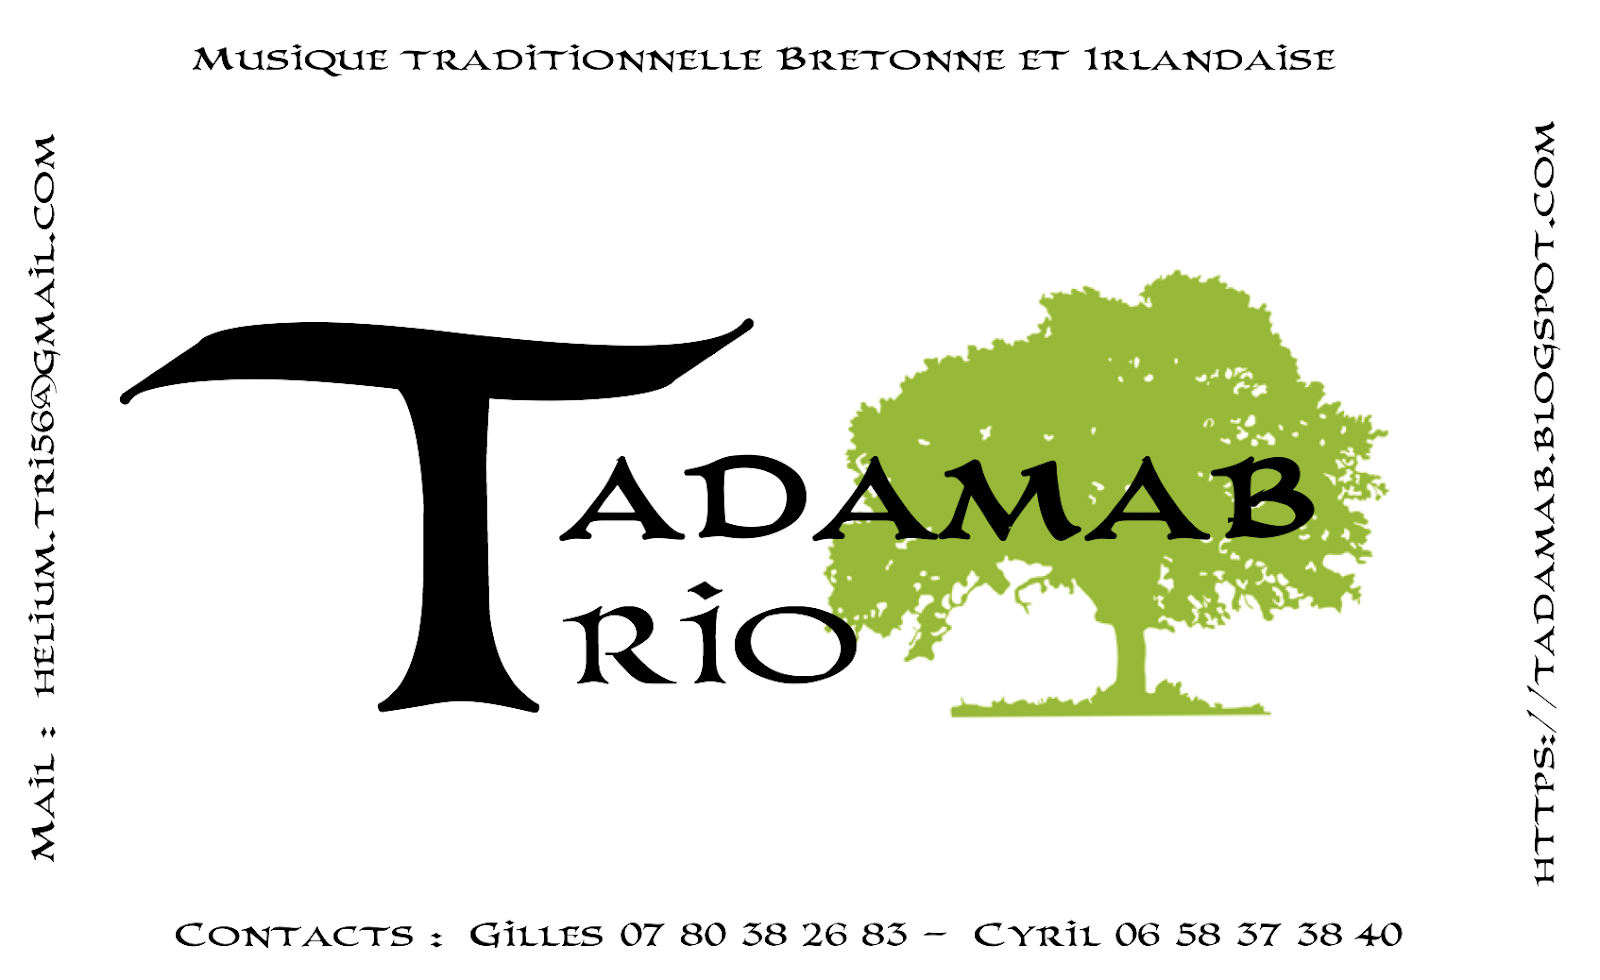 TADAMAB Blog Officiel